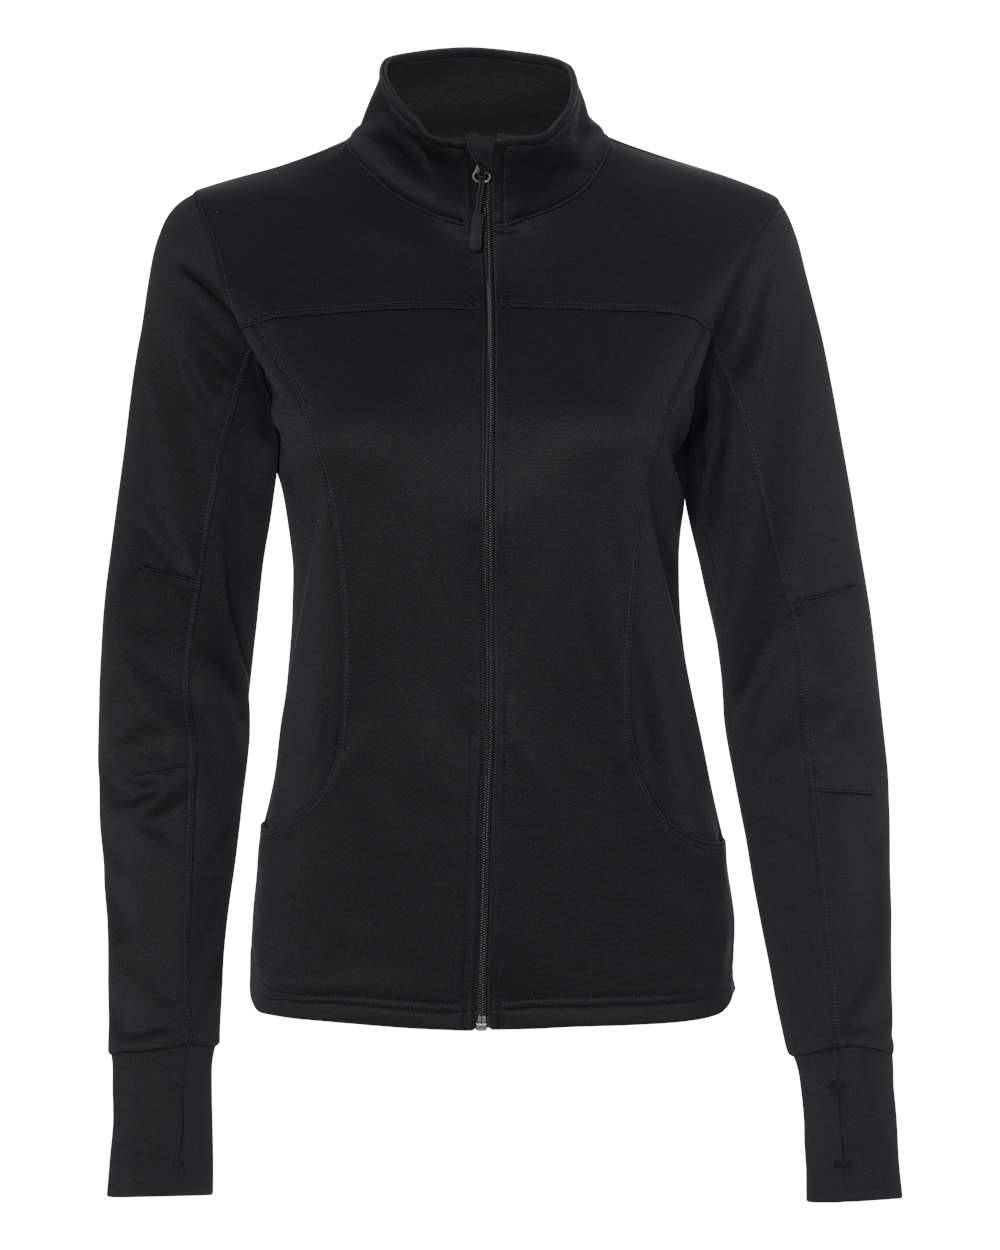 Independent Trading Co. - Women's Poly-Tech Full-Zip Track Jacket - EXP60PAZ - Black - XS - X-Small